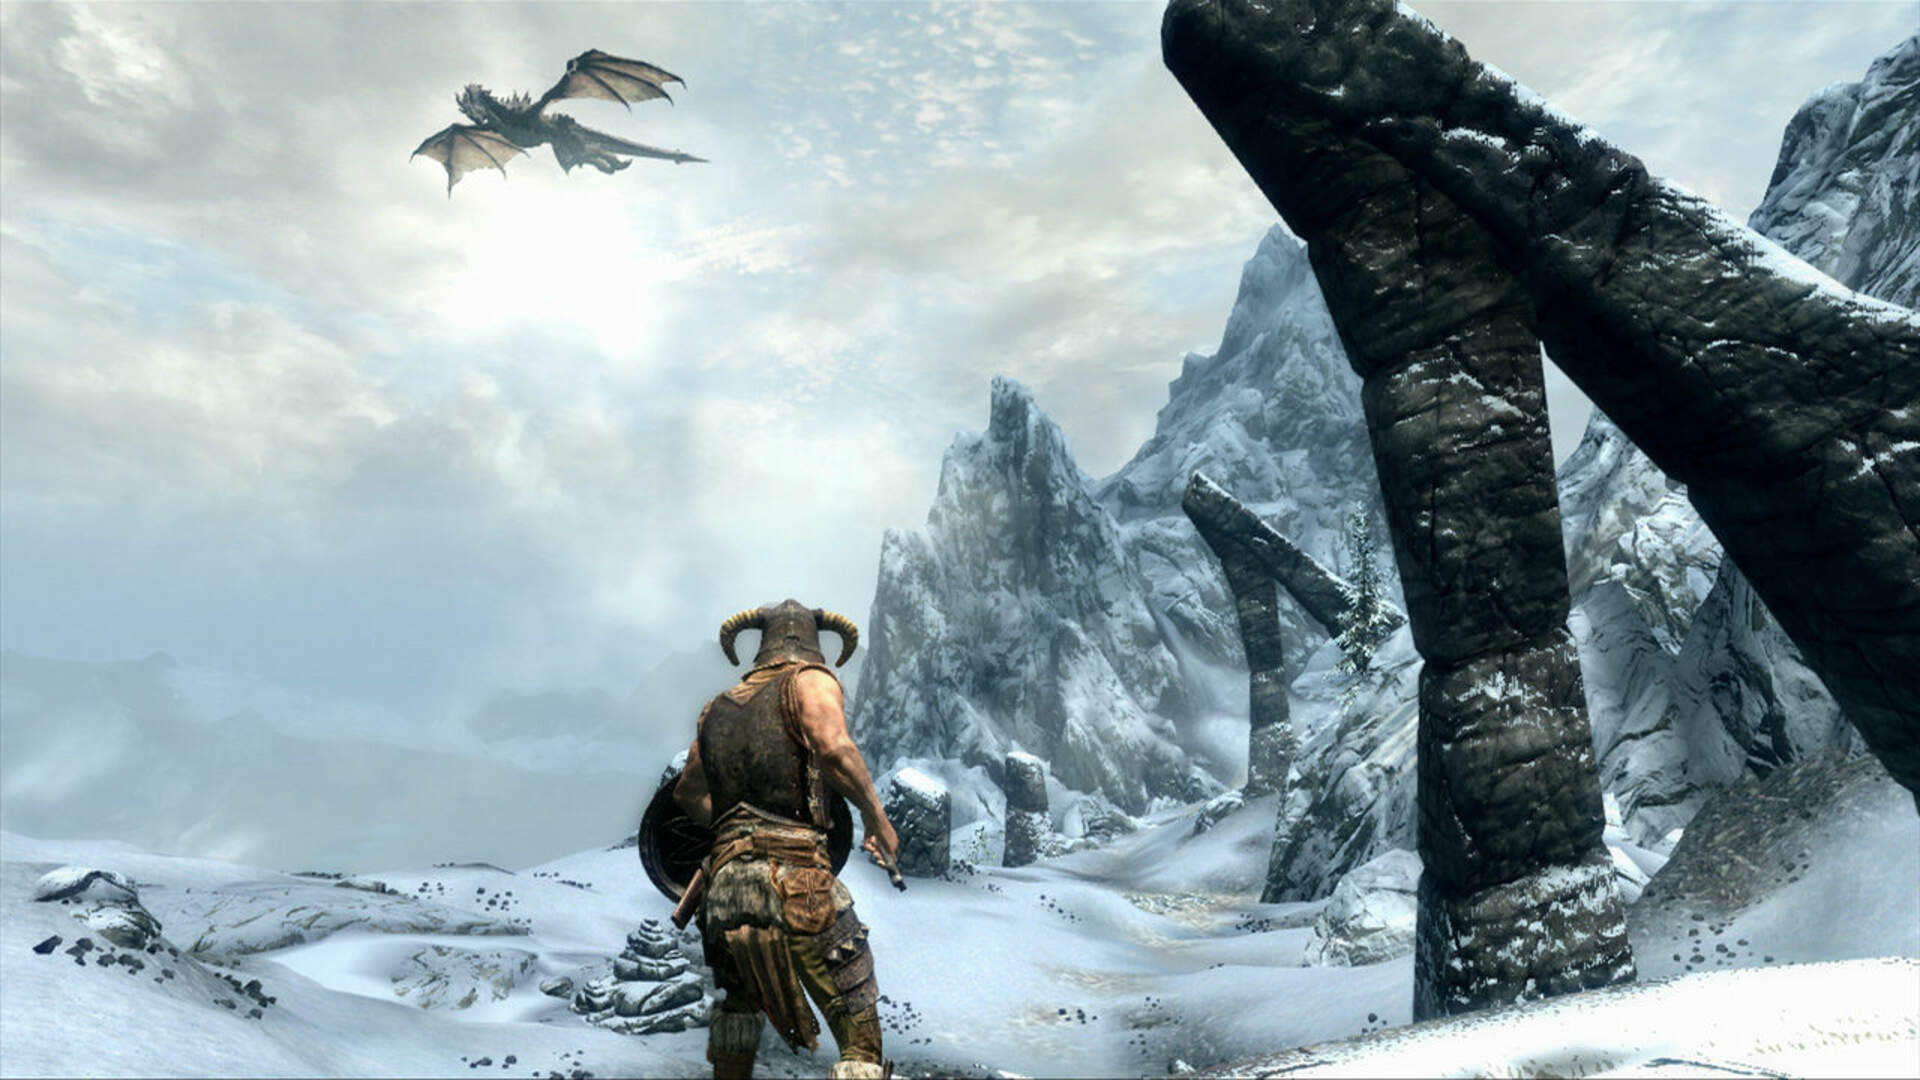 Skyrim Switch - Review Roundup, No Mod Support, New Features, Gameplay Footage, Link, Master Sword, Amiibo - Everything We Know